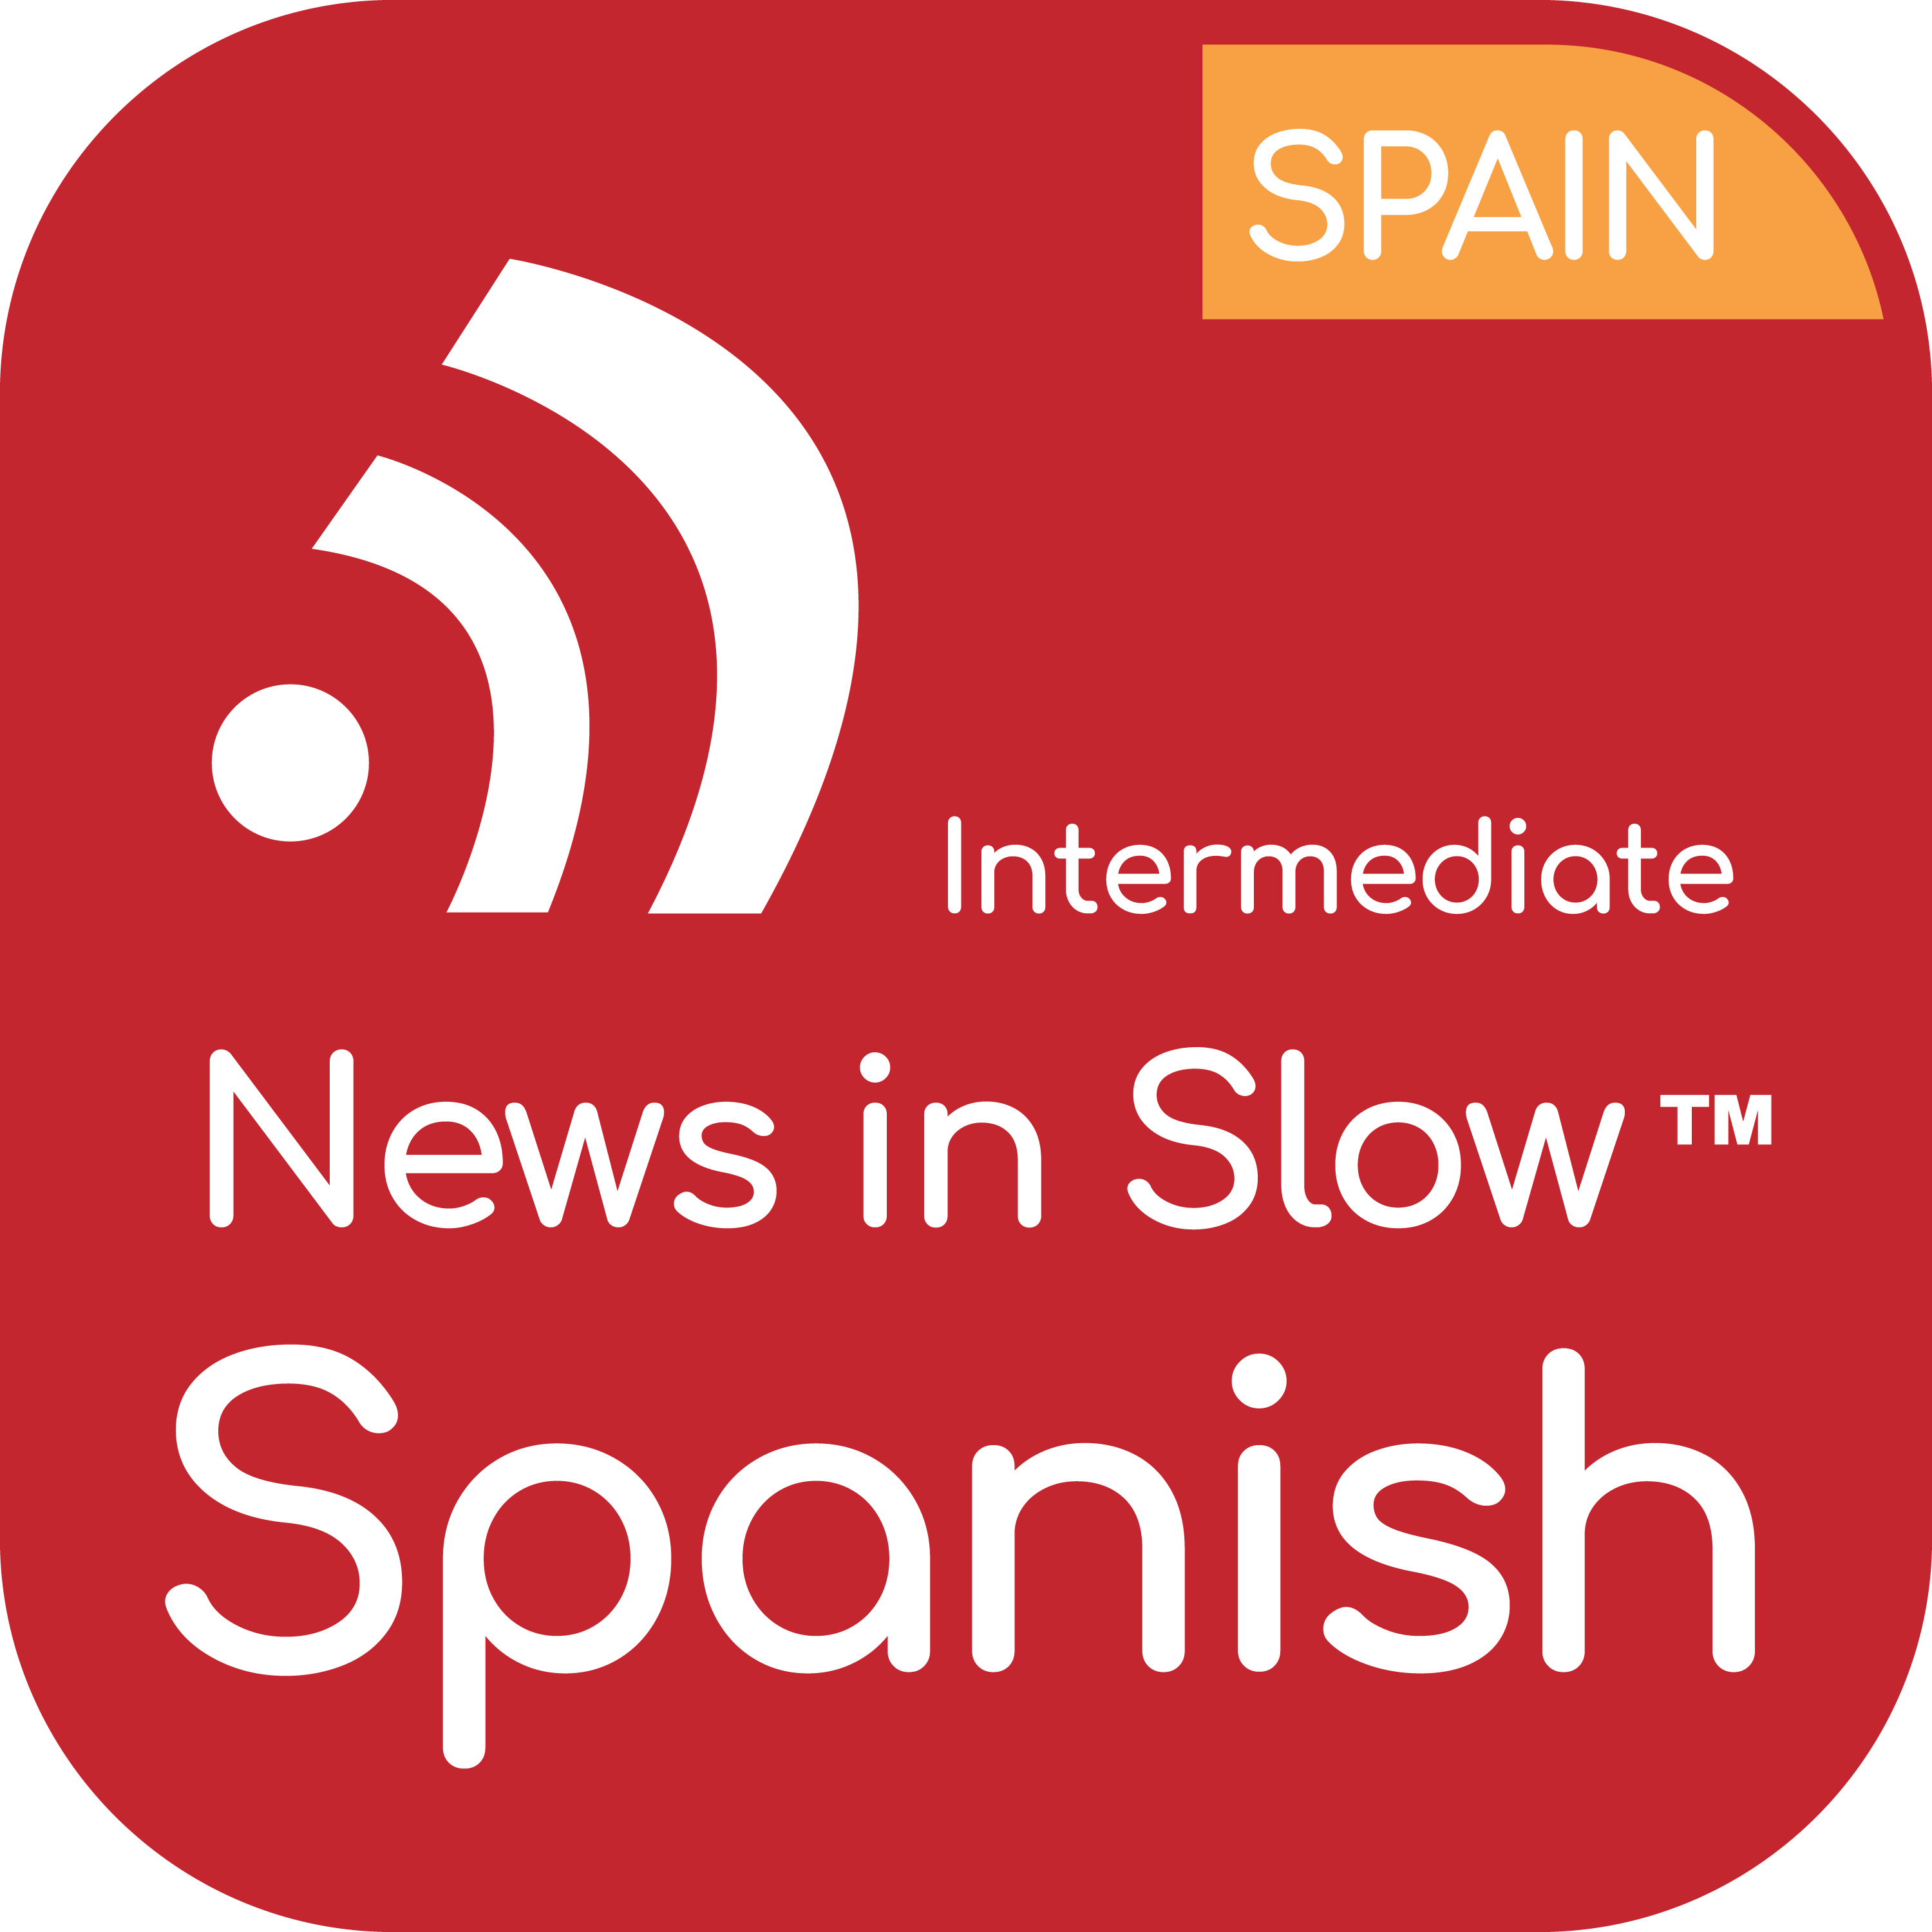 News in Slow Spanish - #612 - Easy Spanish Radio